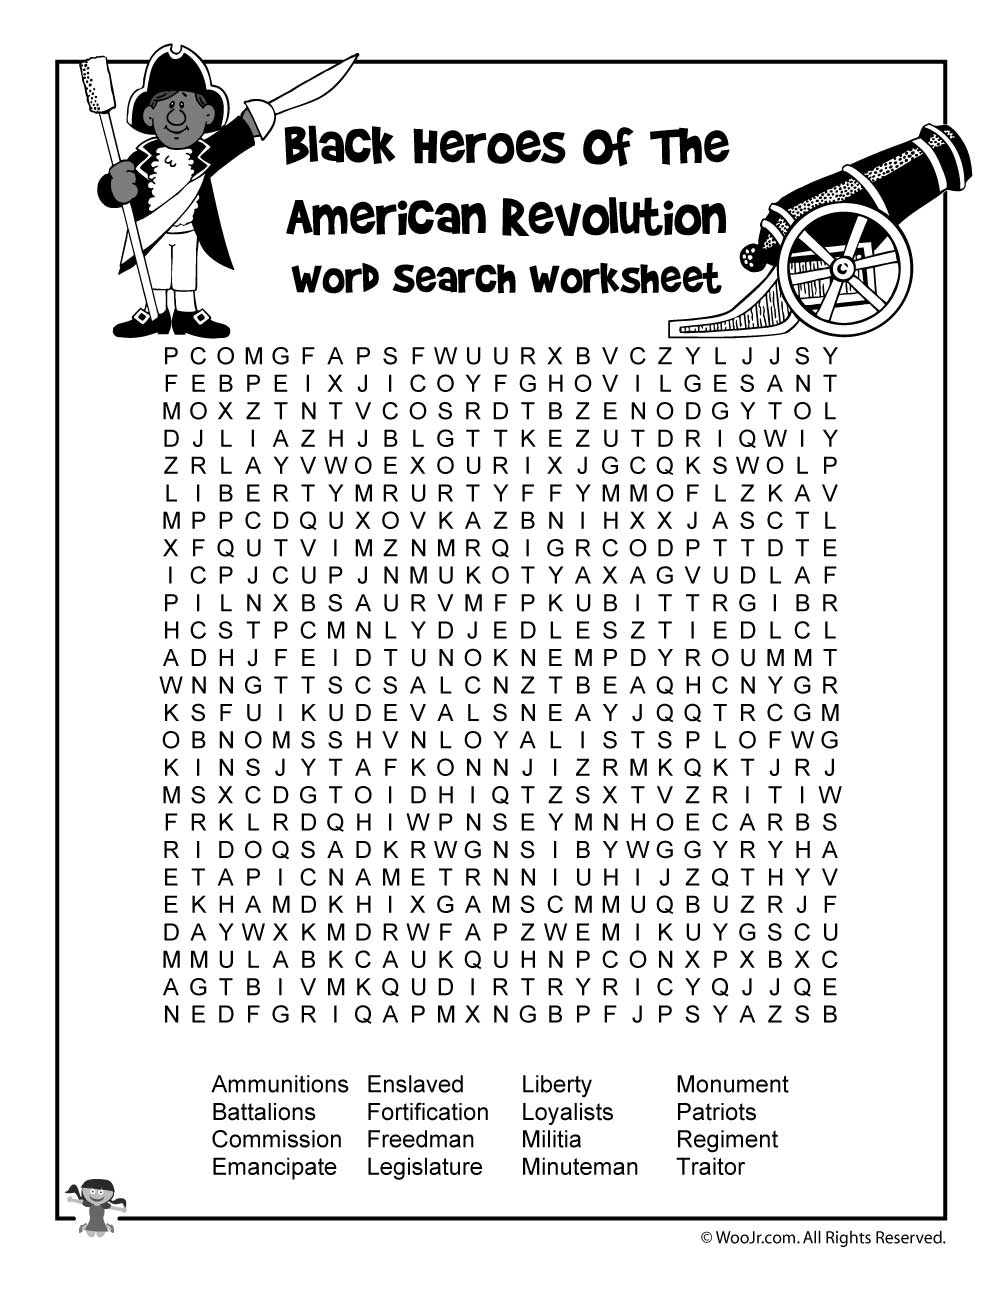 Black Heroes of the Revolutionary War Word Search